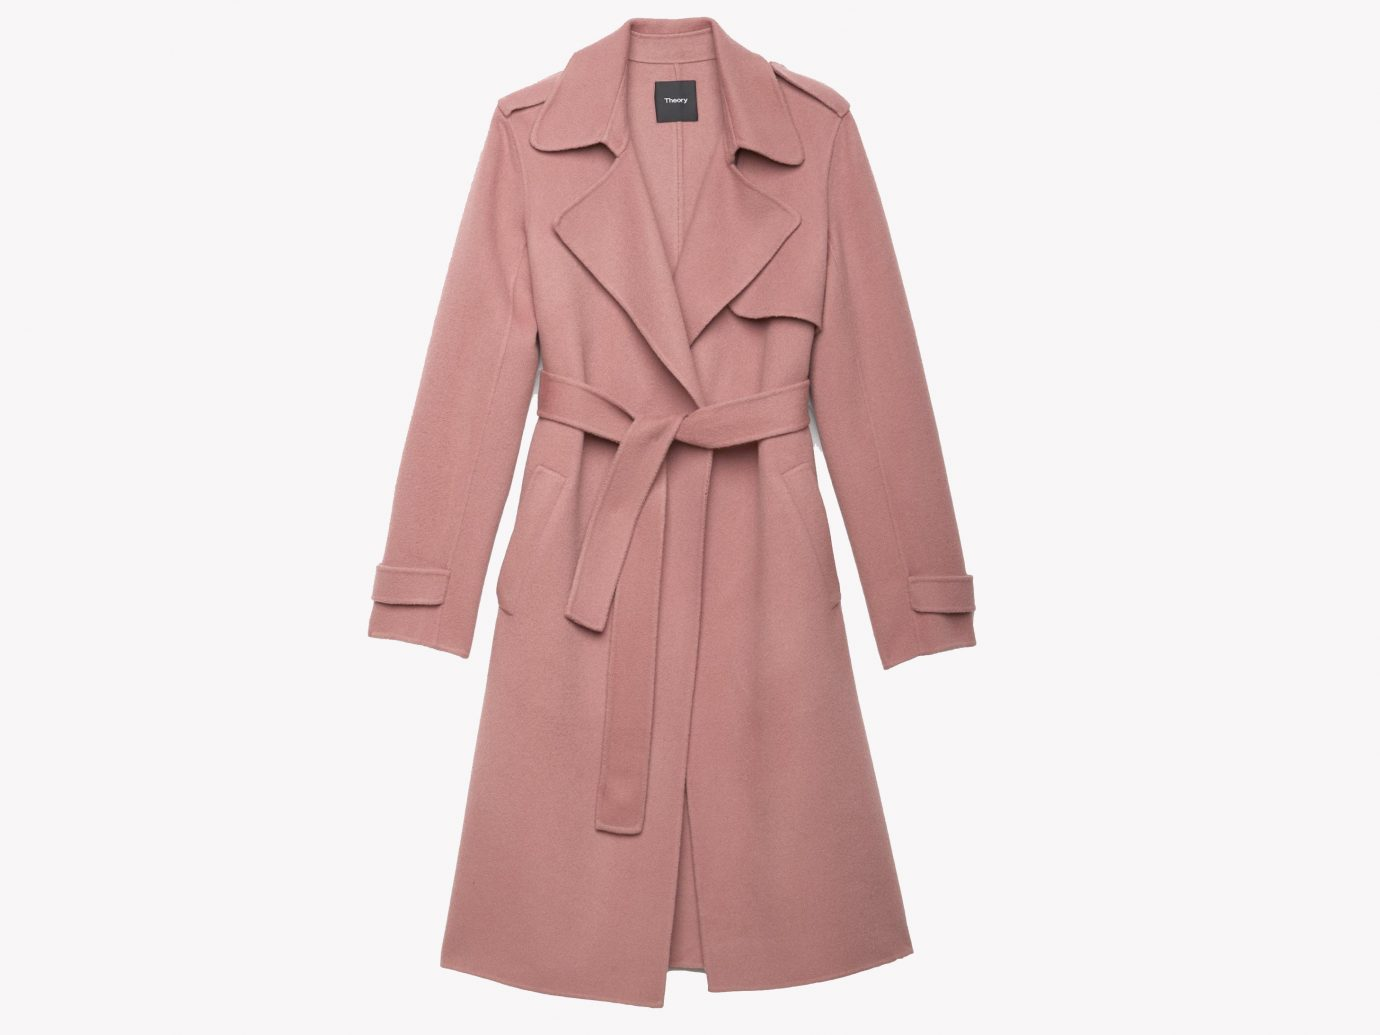 Style + Design coat clothing trench coat overcoat outerwear sleeve robe wool gown